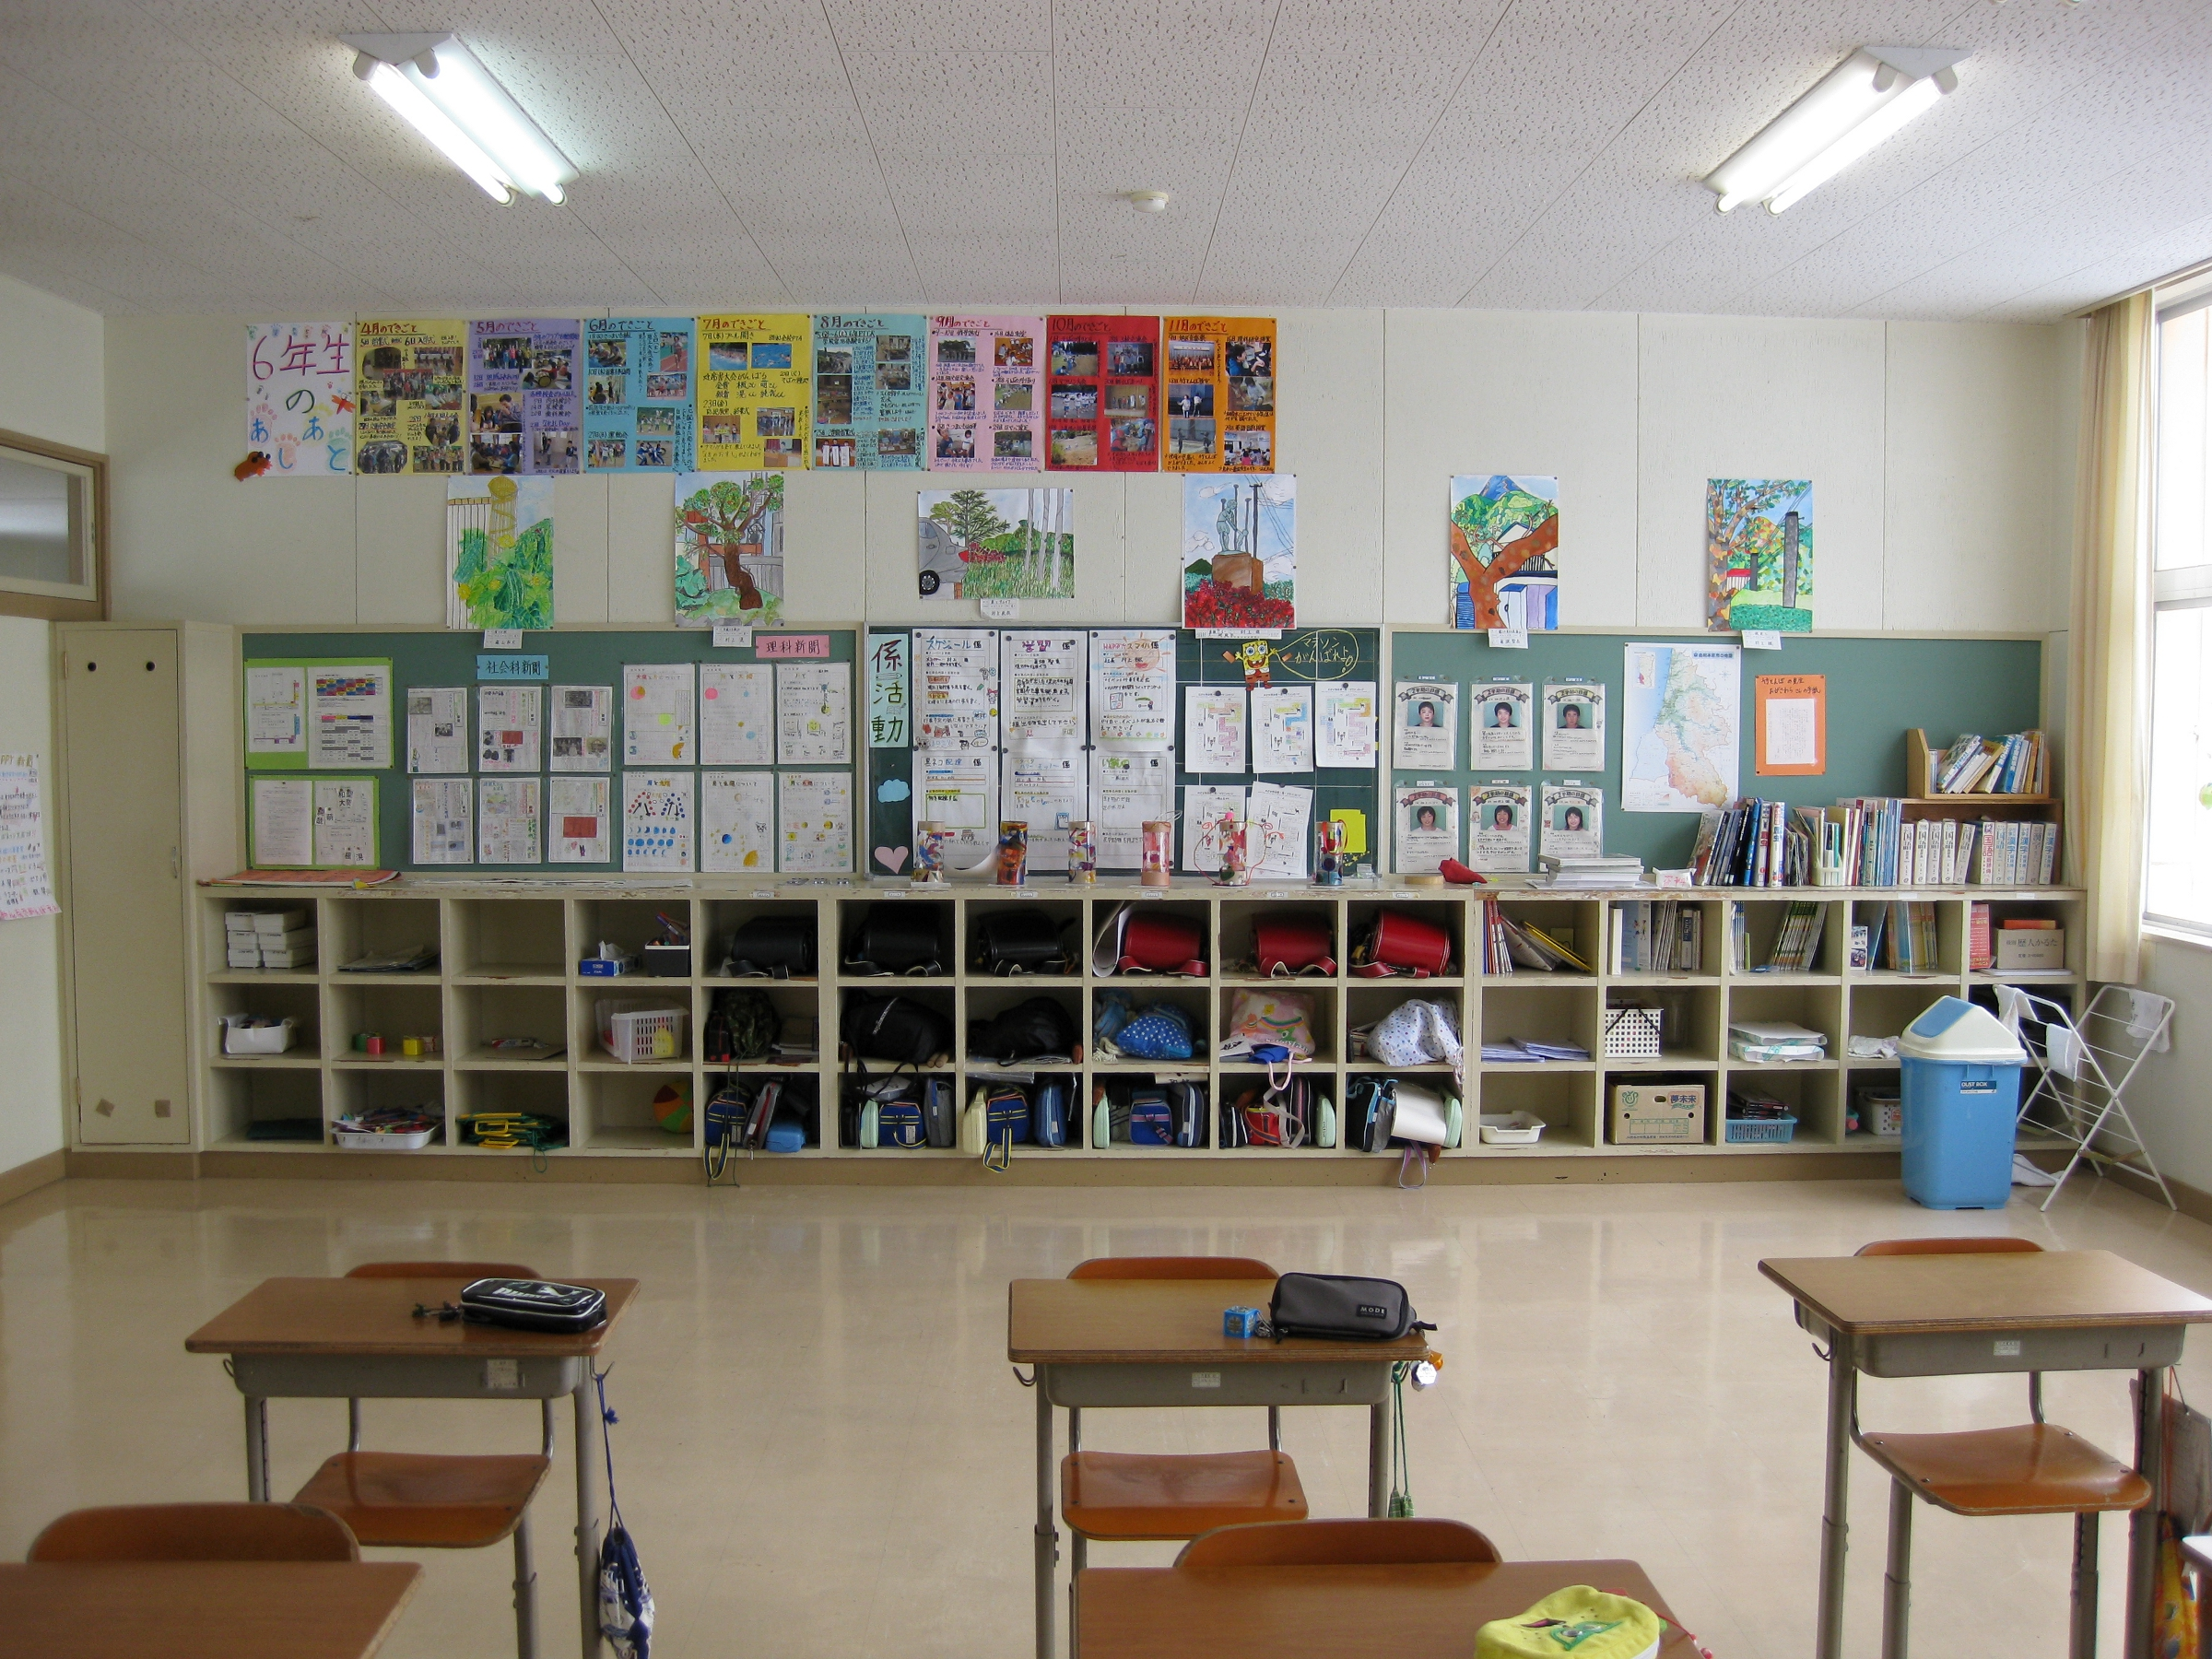 Pictures Of Elementary Classrooms ~ File hitane elementary school classroom g wikimedia